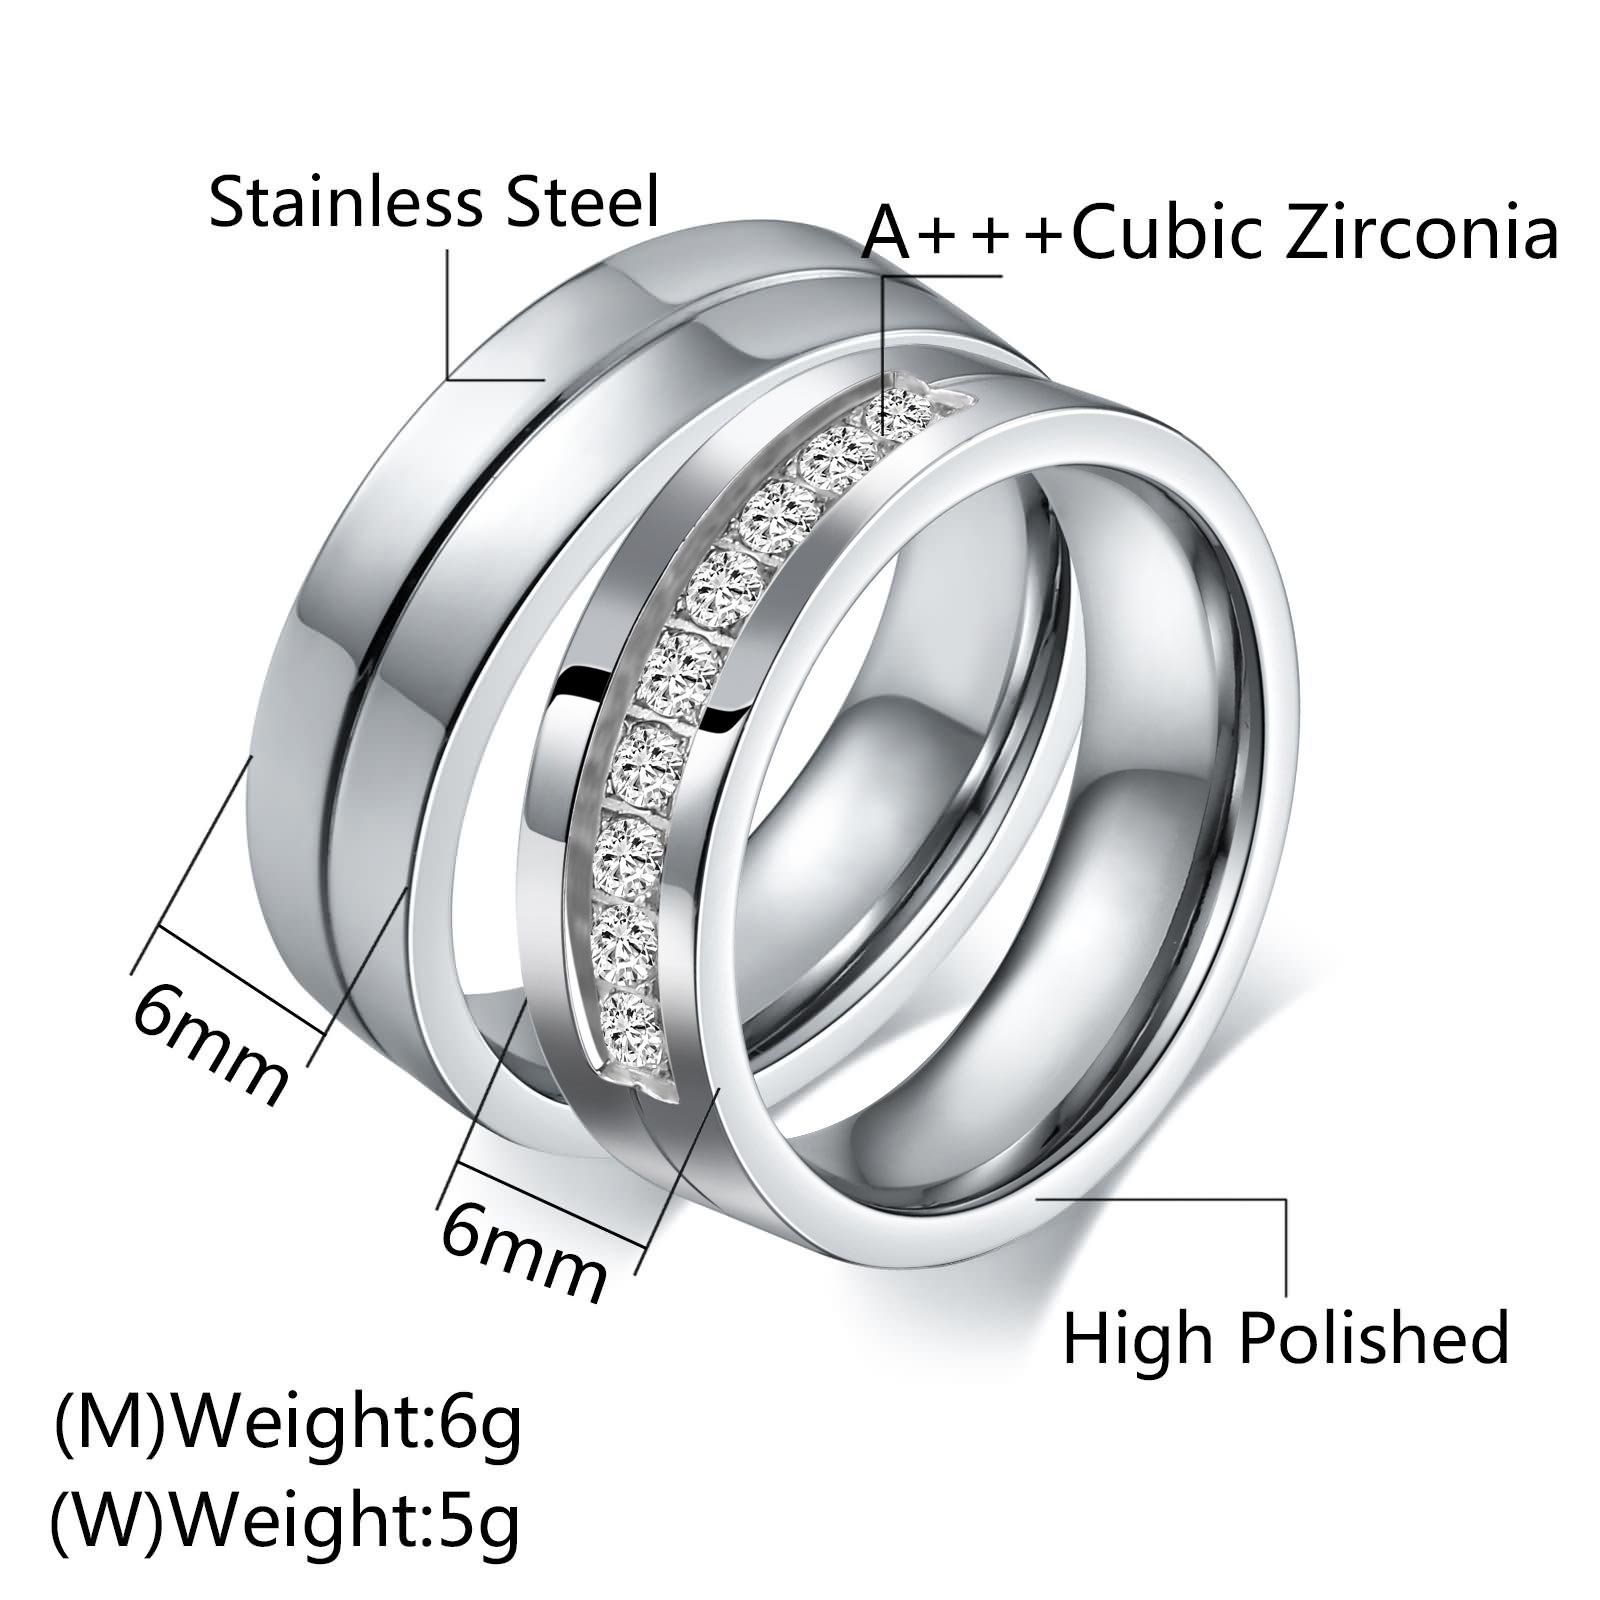 Aeici Stianless Steel Silver ''Forever Love'' Couples Promise Ring Romantic Couples Gift Women Size 9 & 10 by Aeici (Image #4)